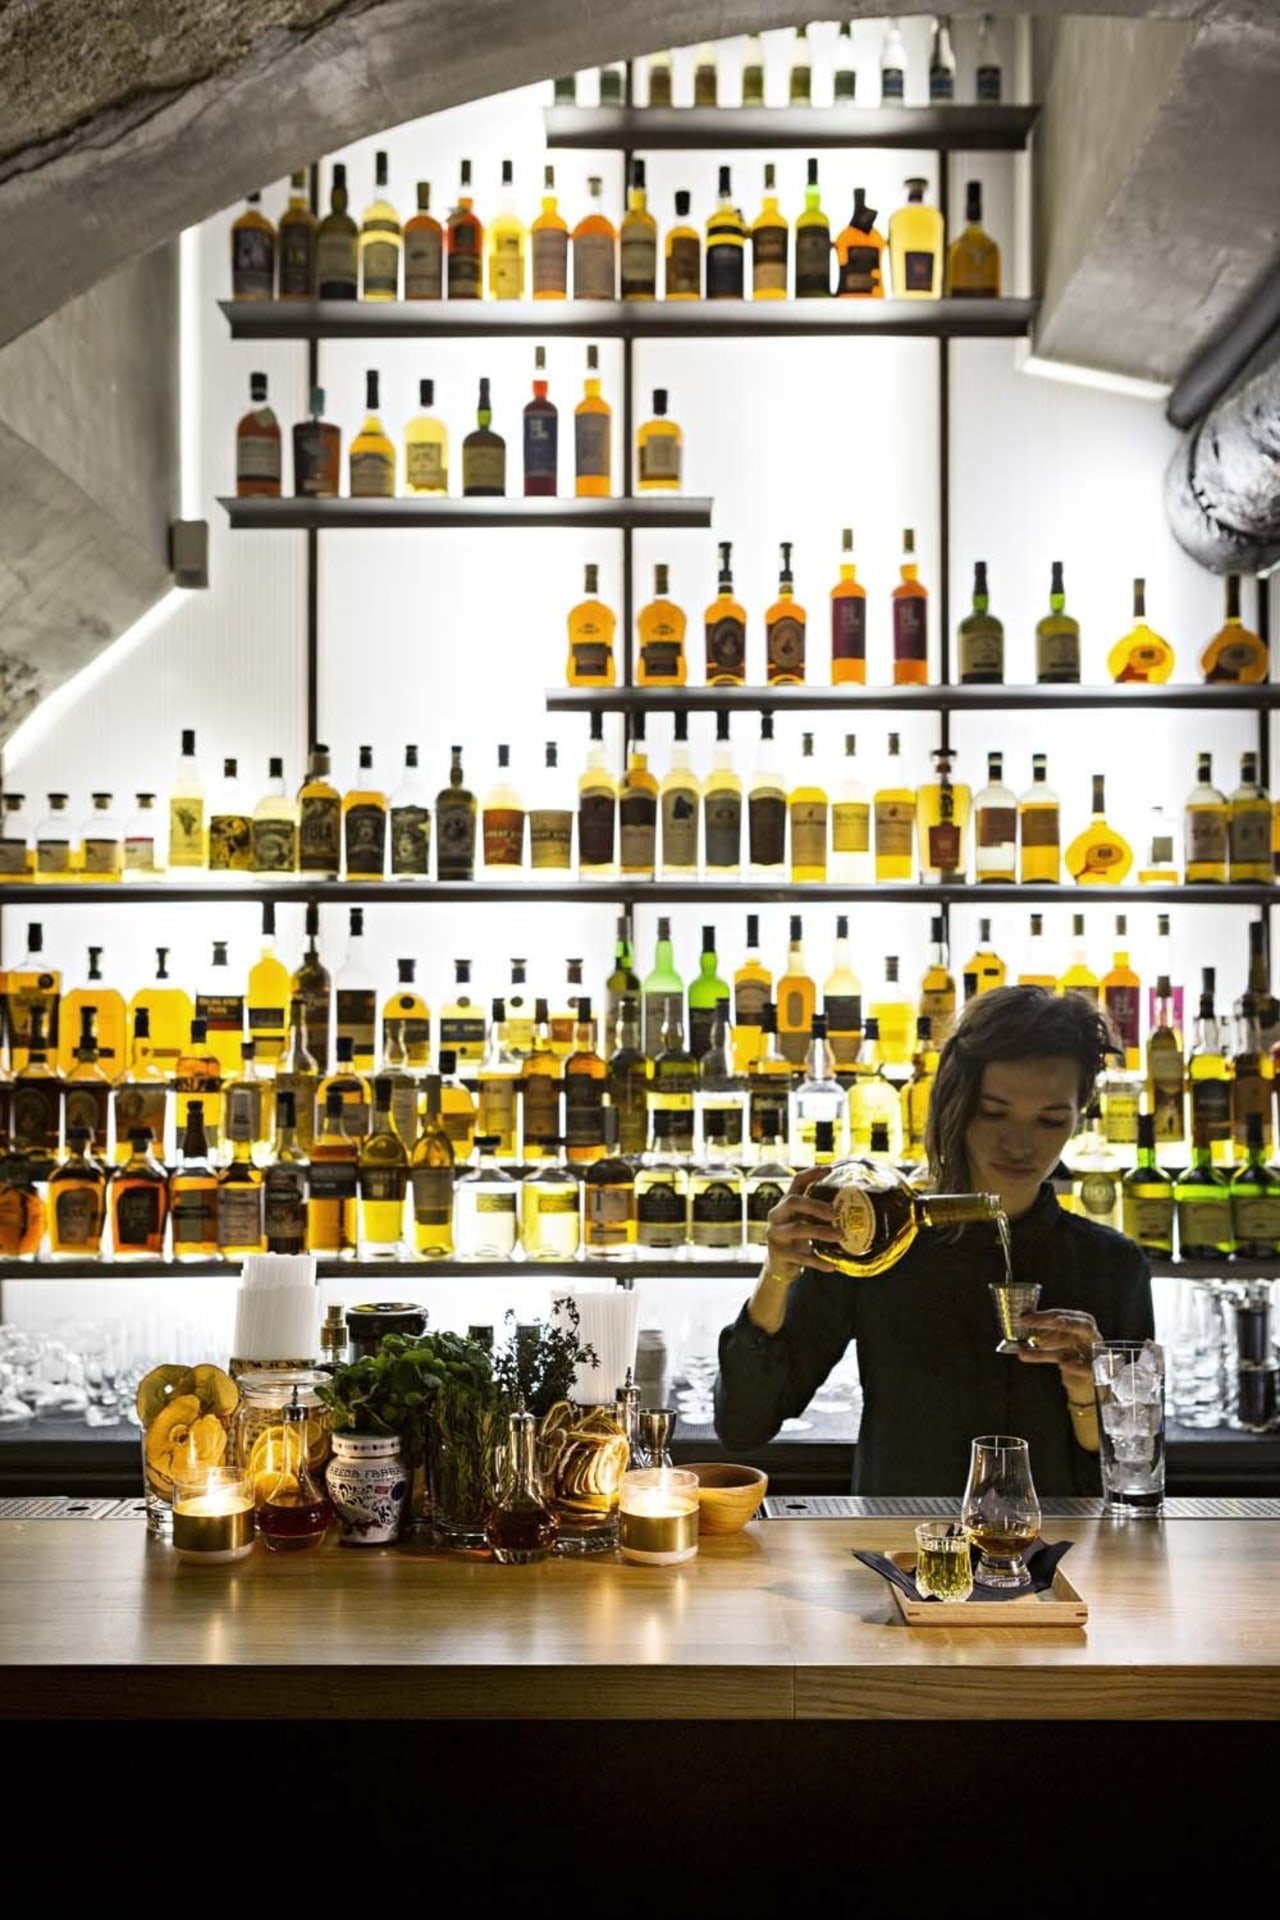 This new whiskey bar takes advantage of a bar, distilled beverage, drink, liquor store, white, black